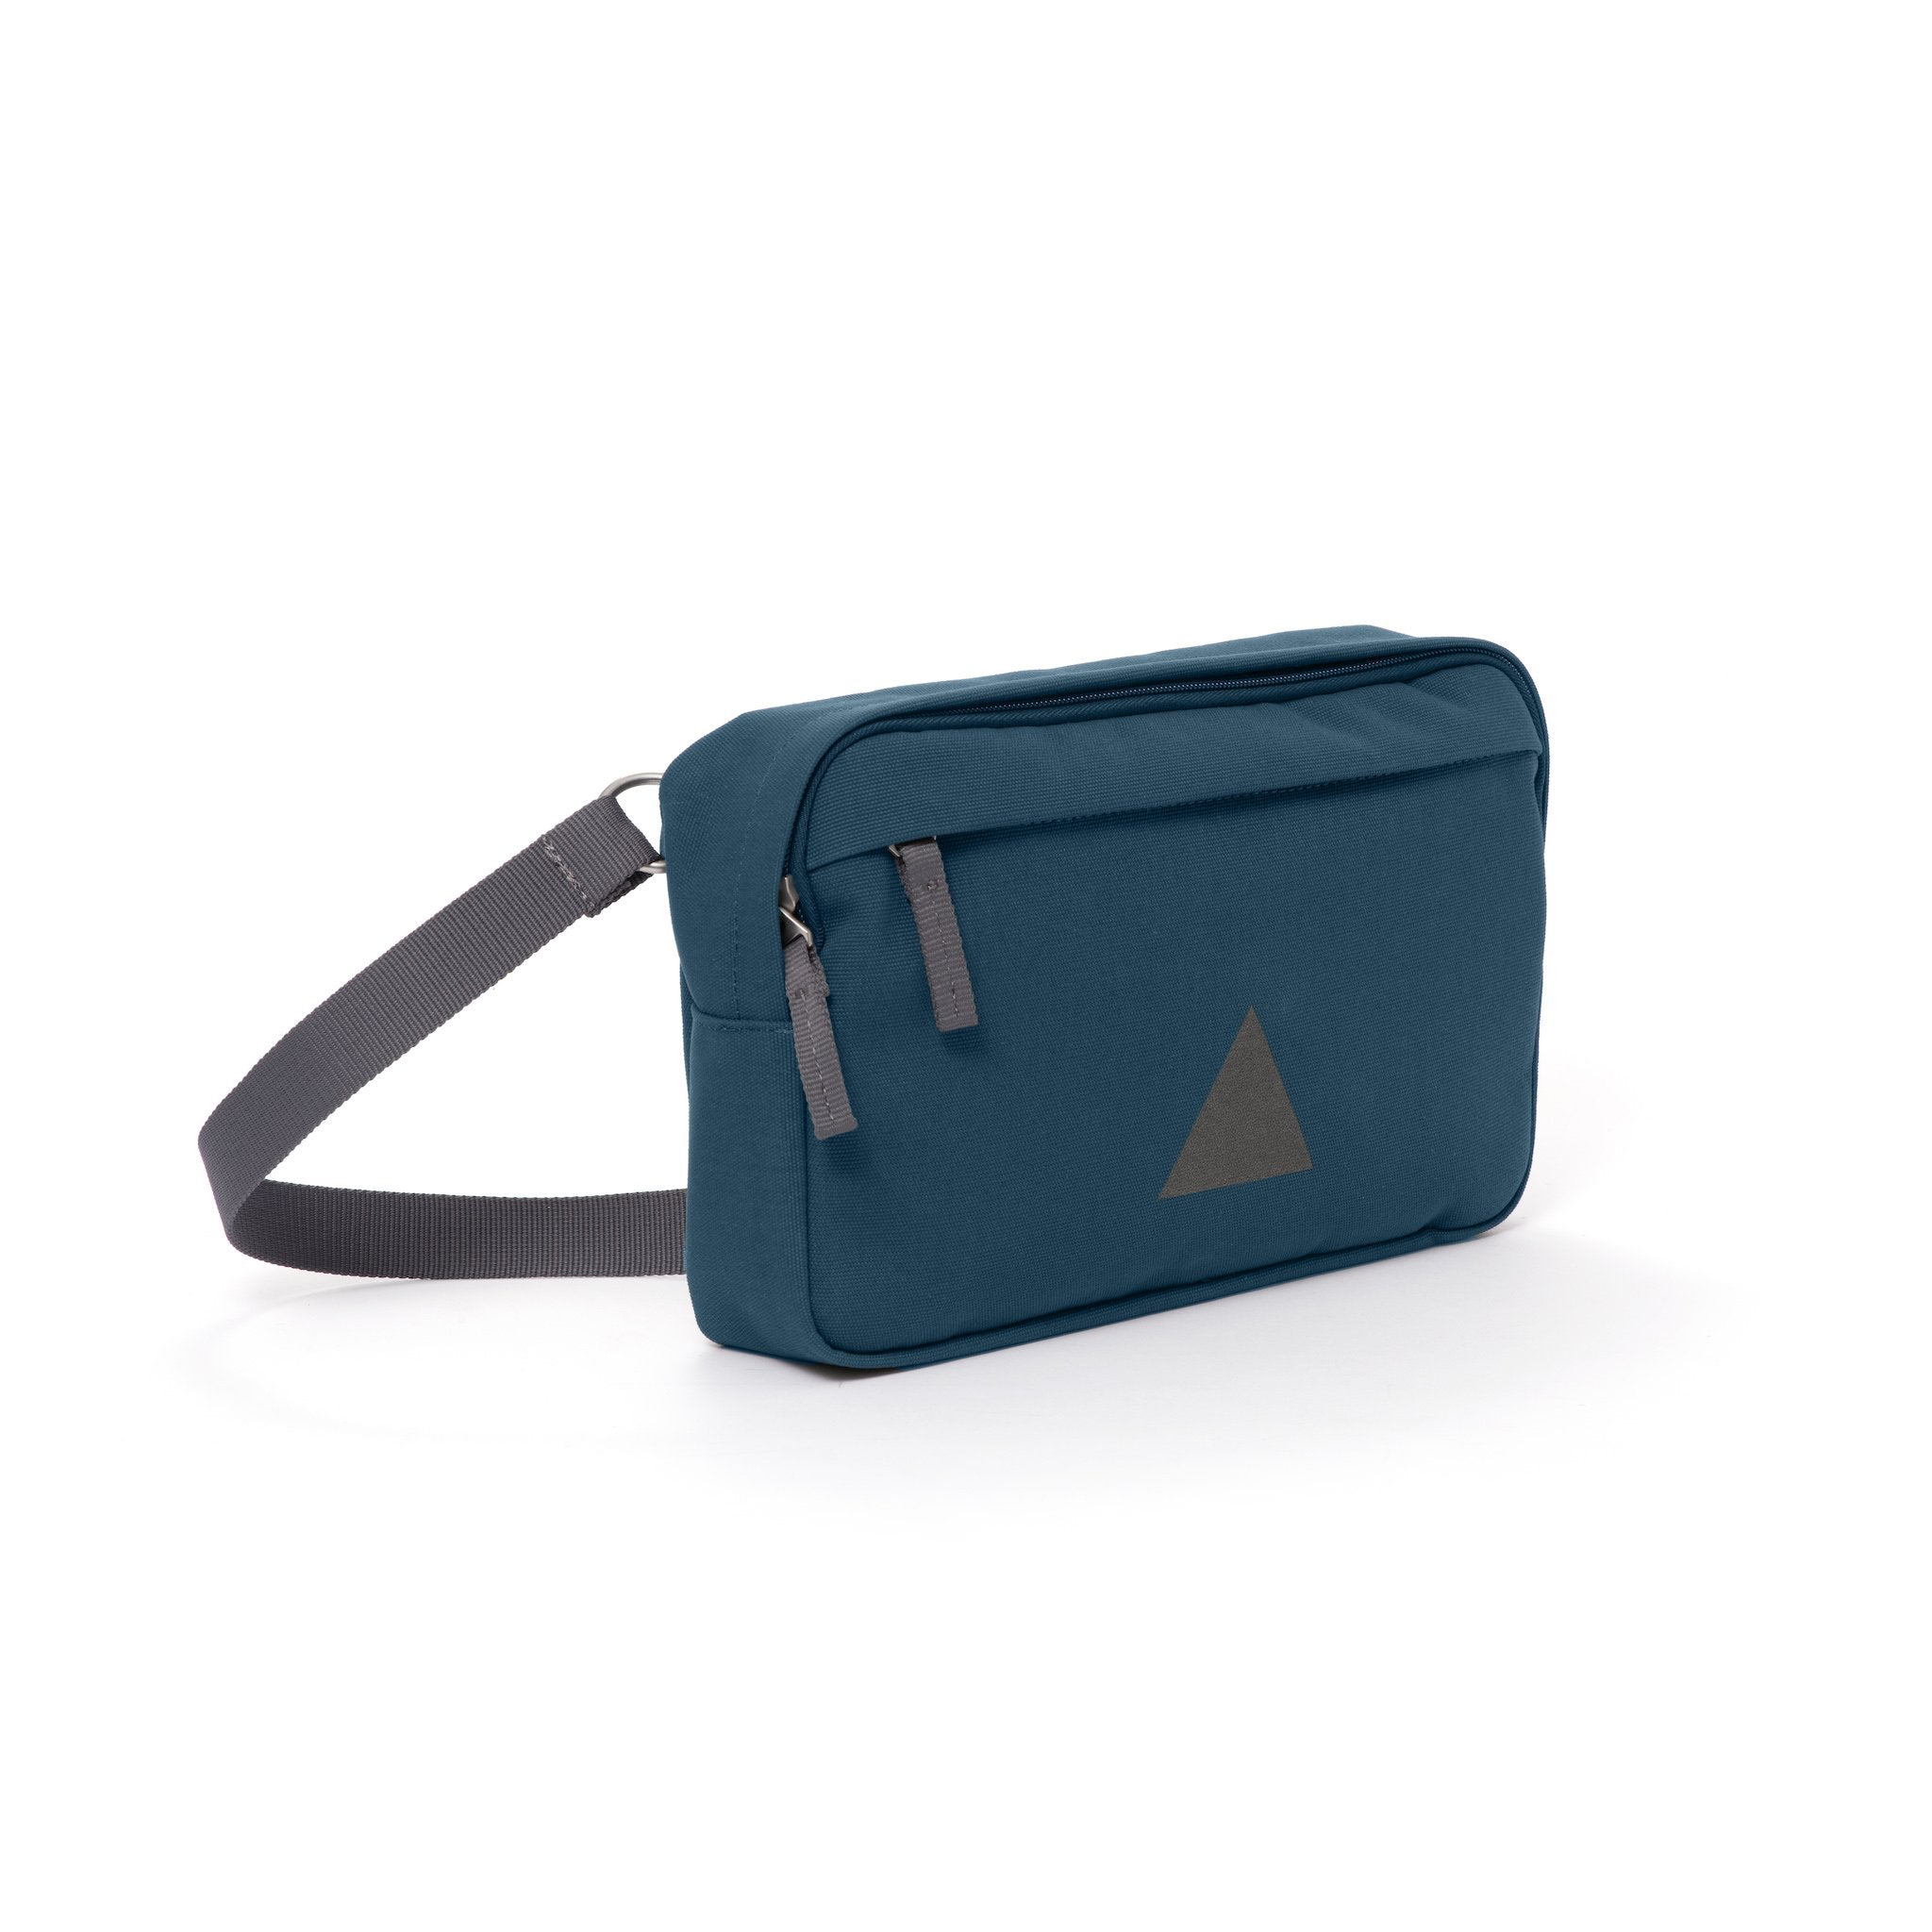 Blue canvas shoulder bag with zip pockets and webbing strap.